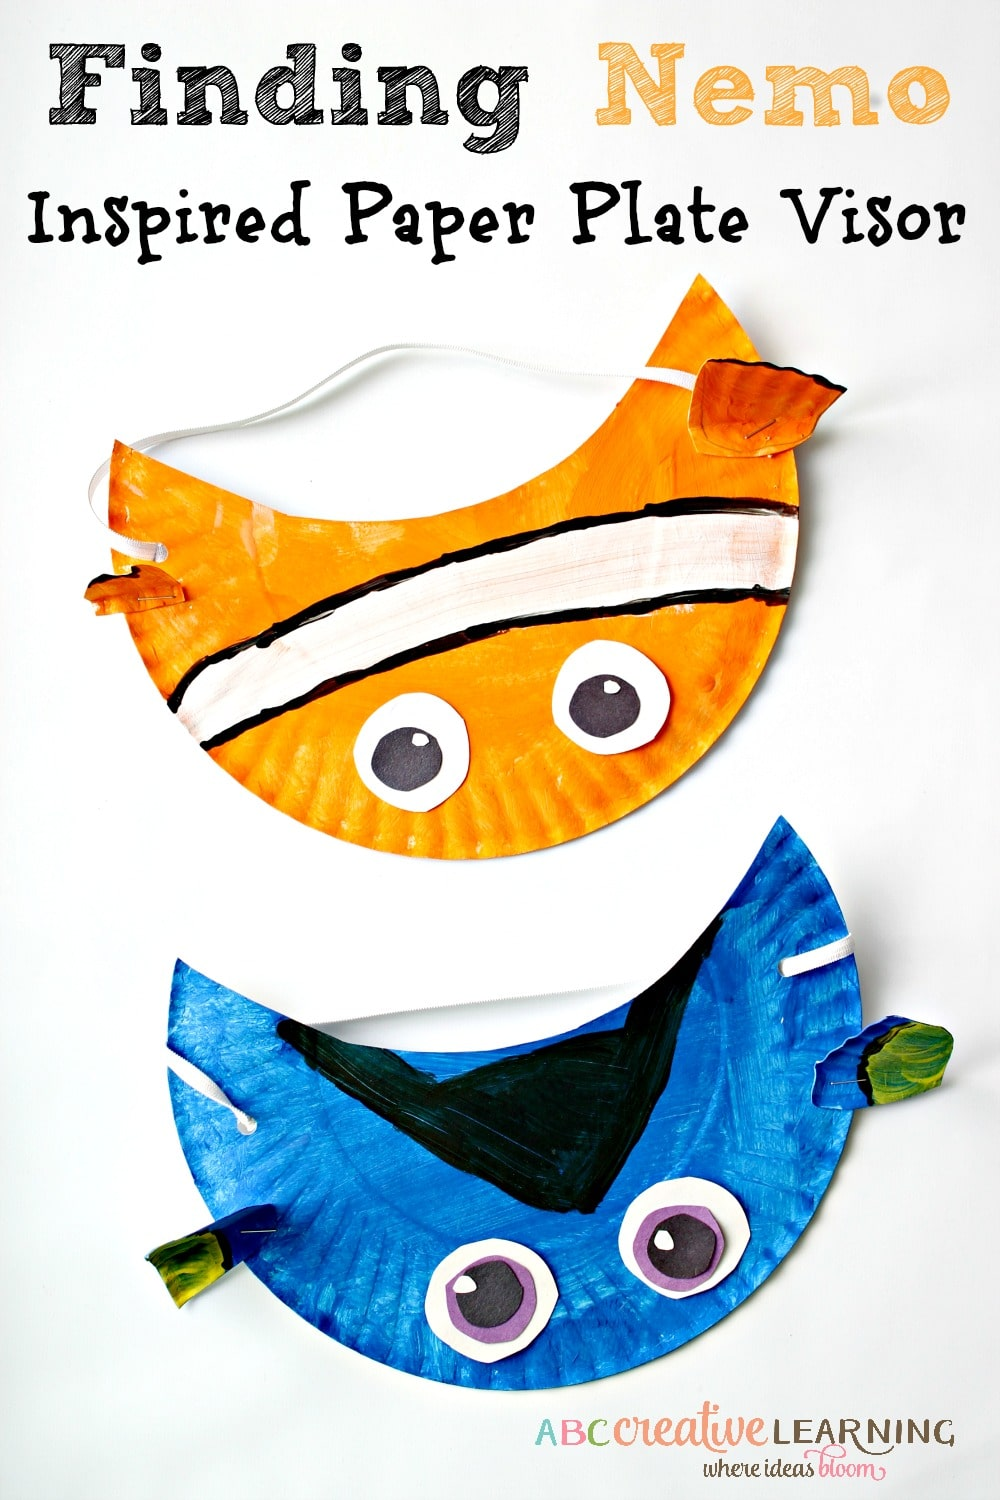 19 Finding Dory Crafts & Activities - Red Ted Art's Blog